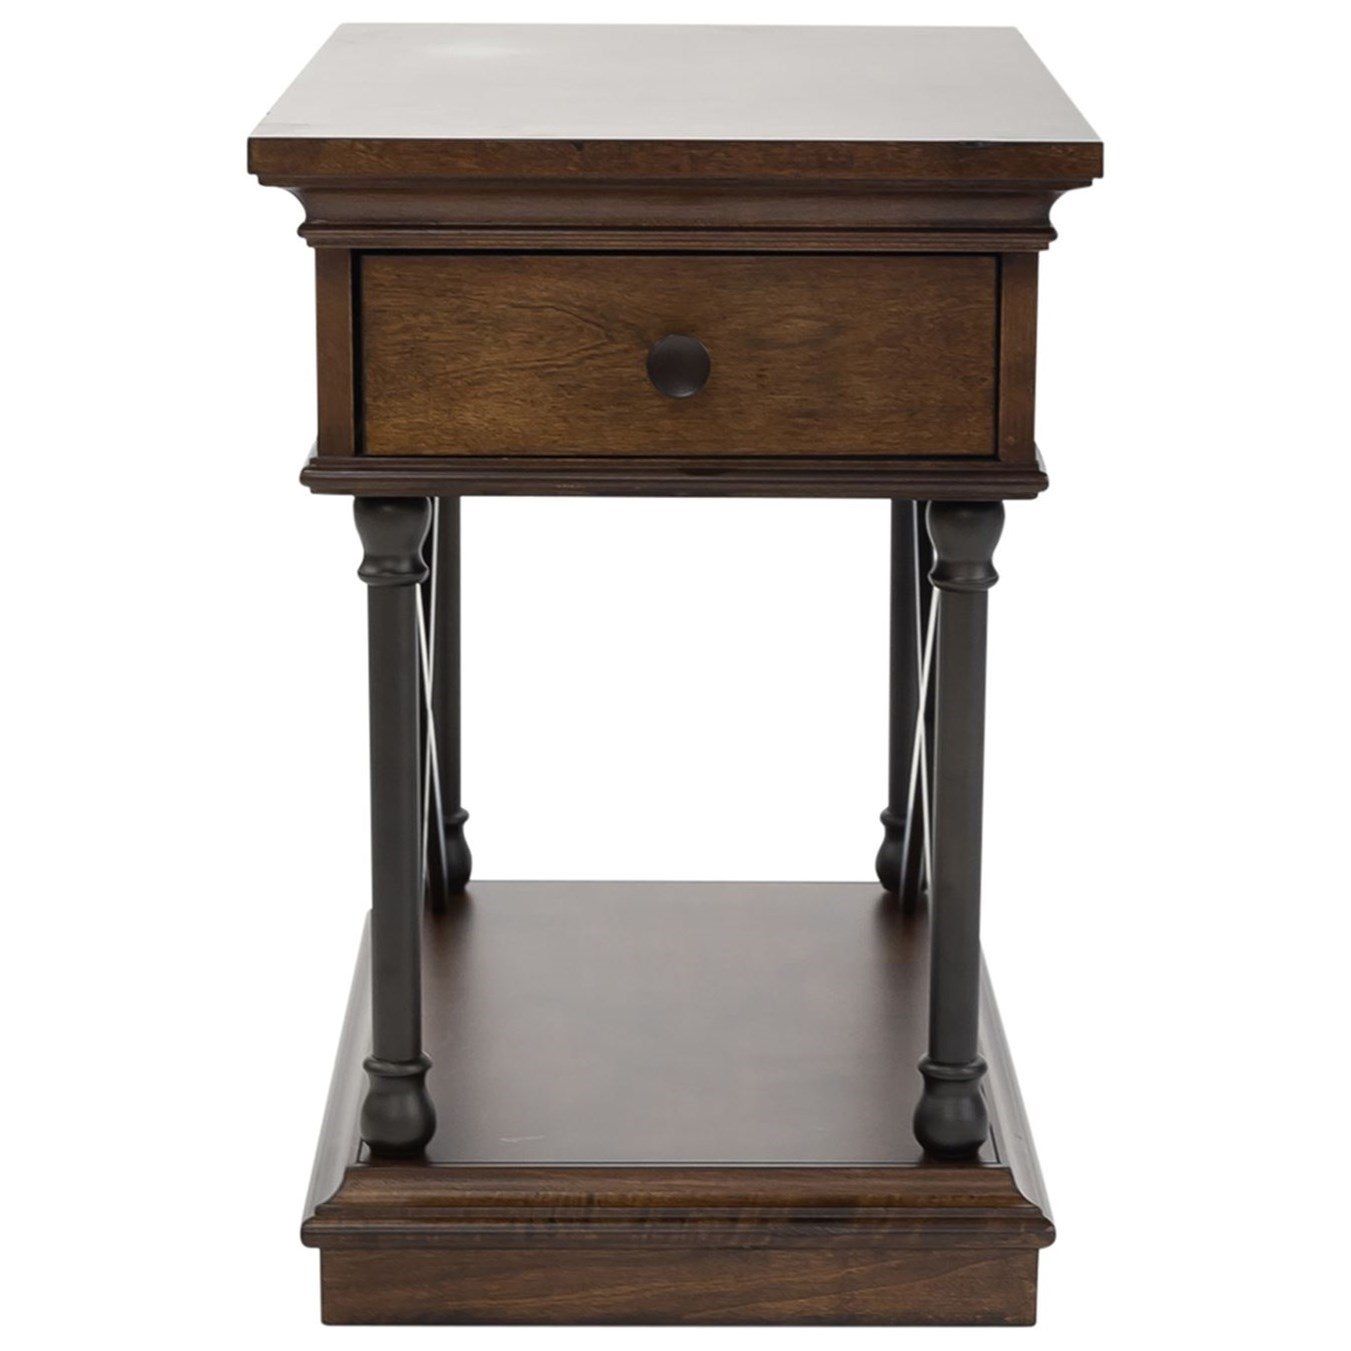 Tribeca Drawer Chair Side Table by Liberty Furniture at Darvin Furniture